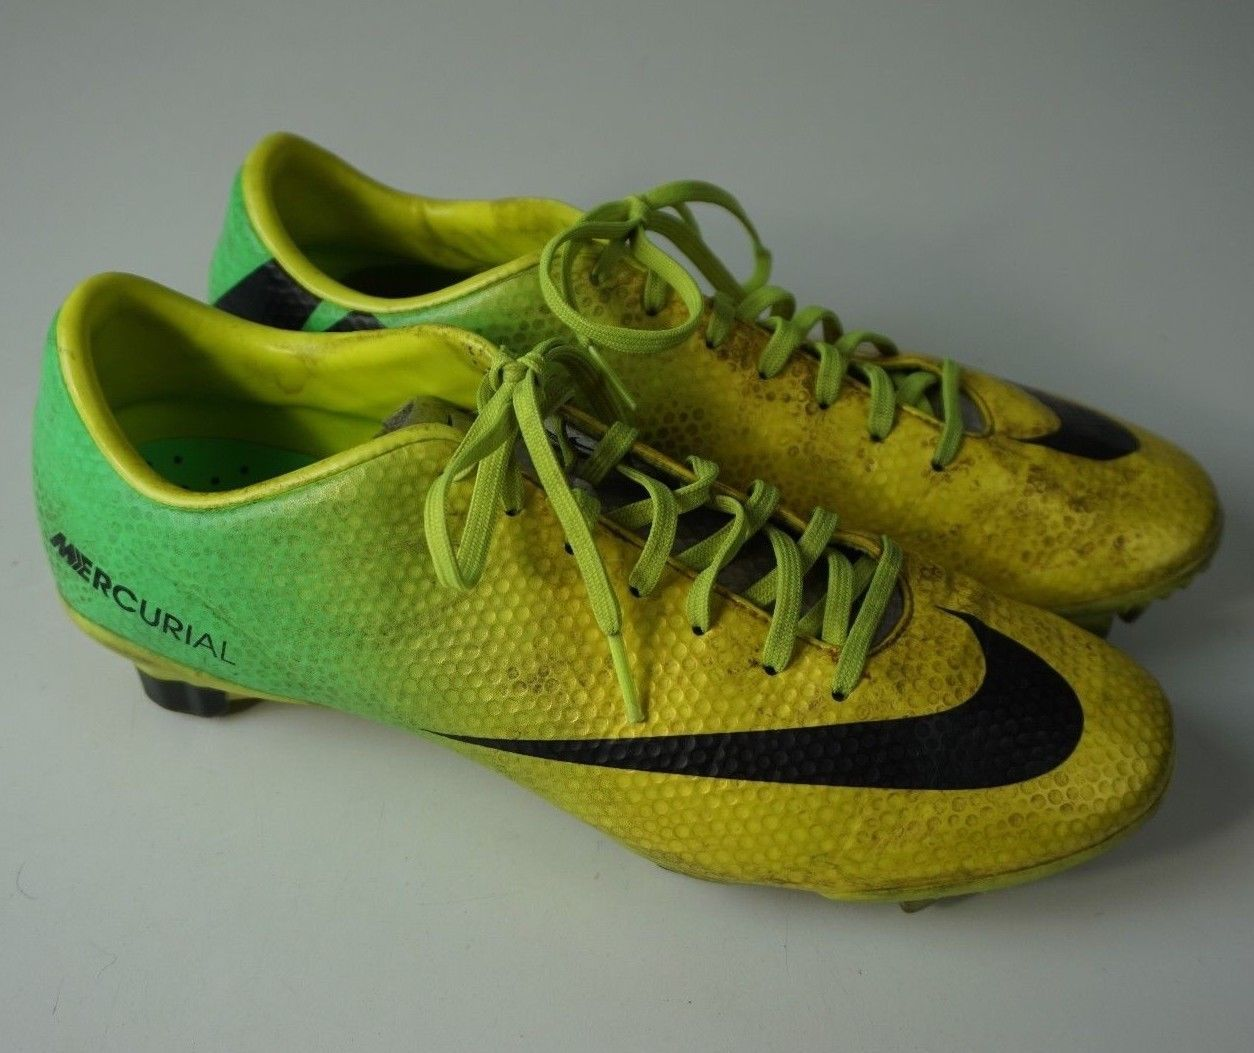 73c11ebd939 Nike Mercurial Veloce FG Soccer Cleat and 50 similar items